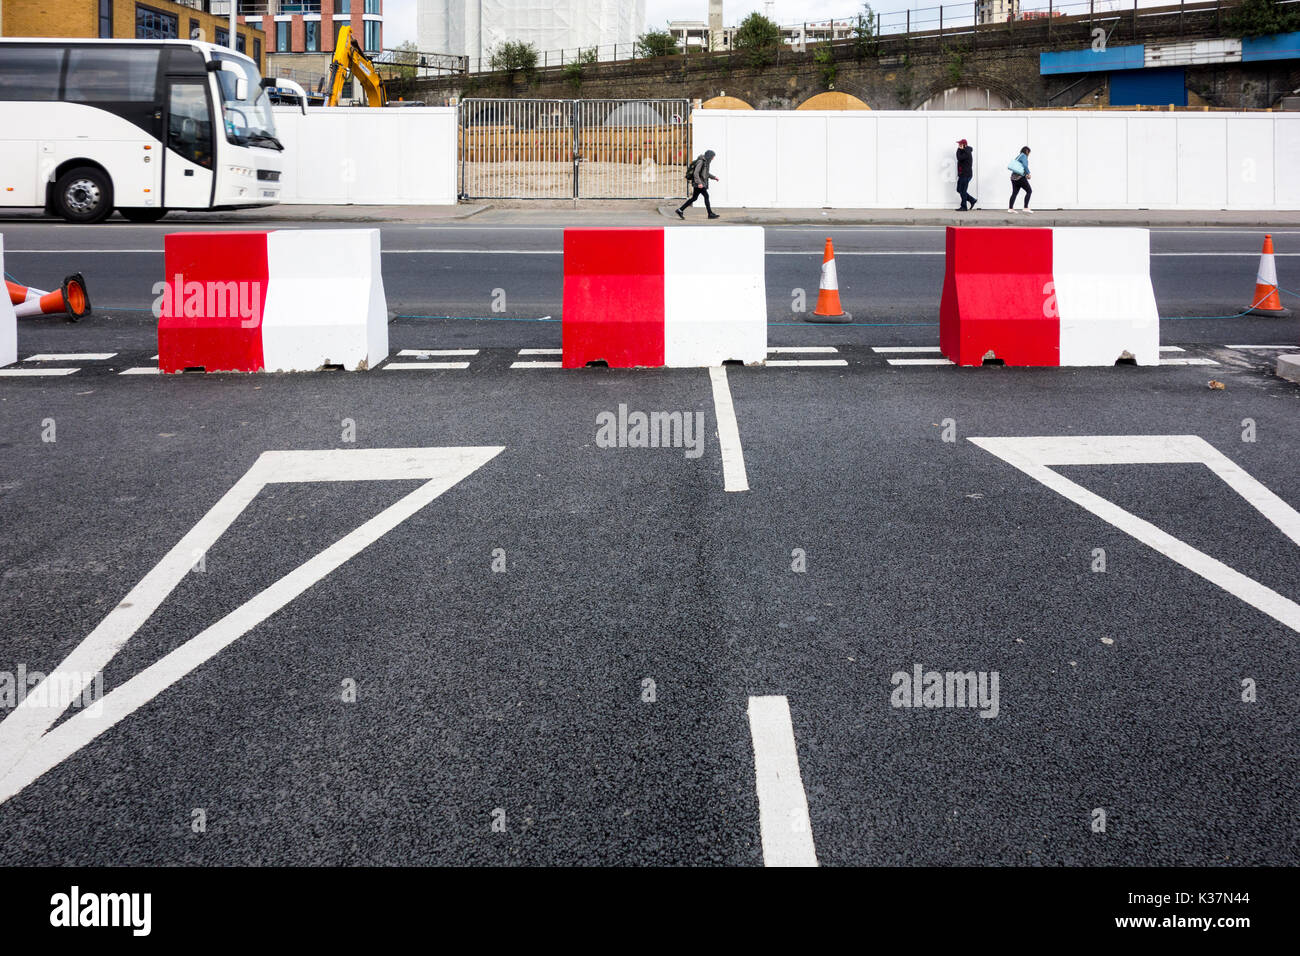 Red and white concrete blocks on a road junction blocking a street - Stock Image